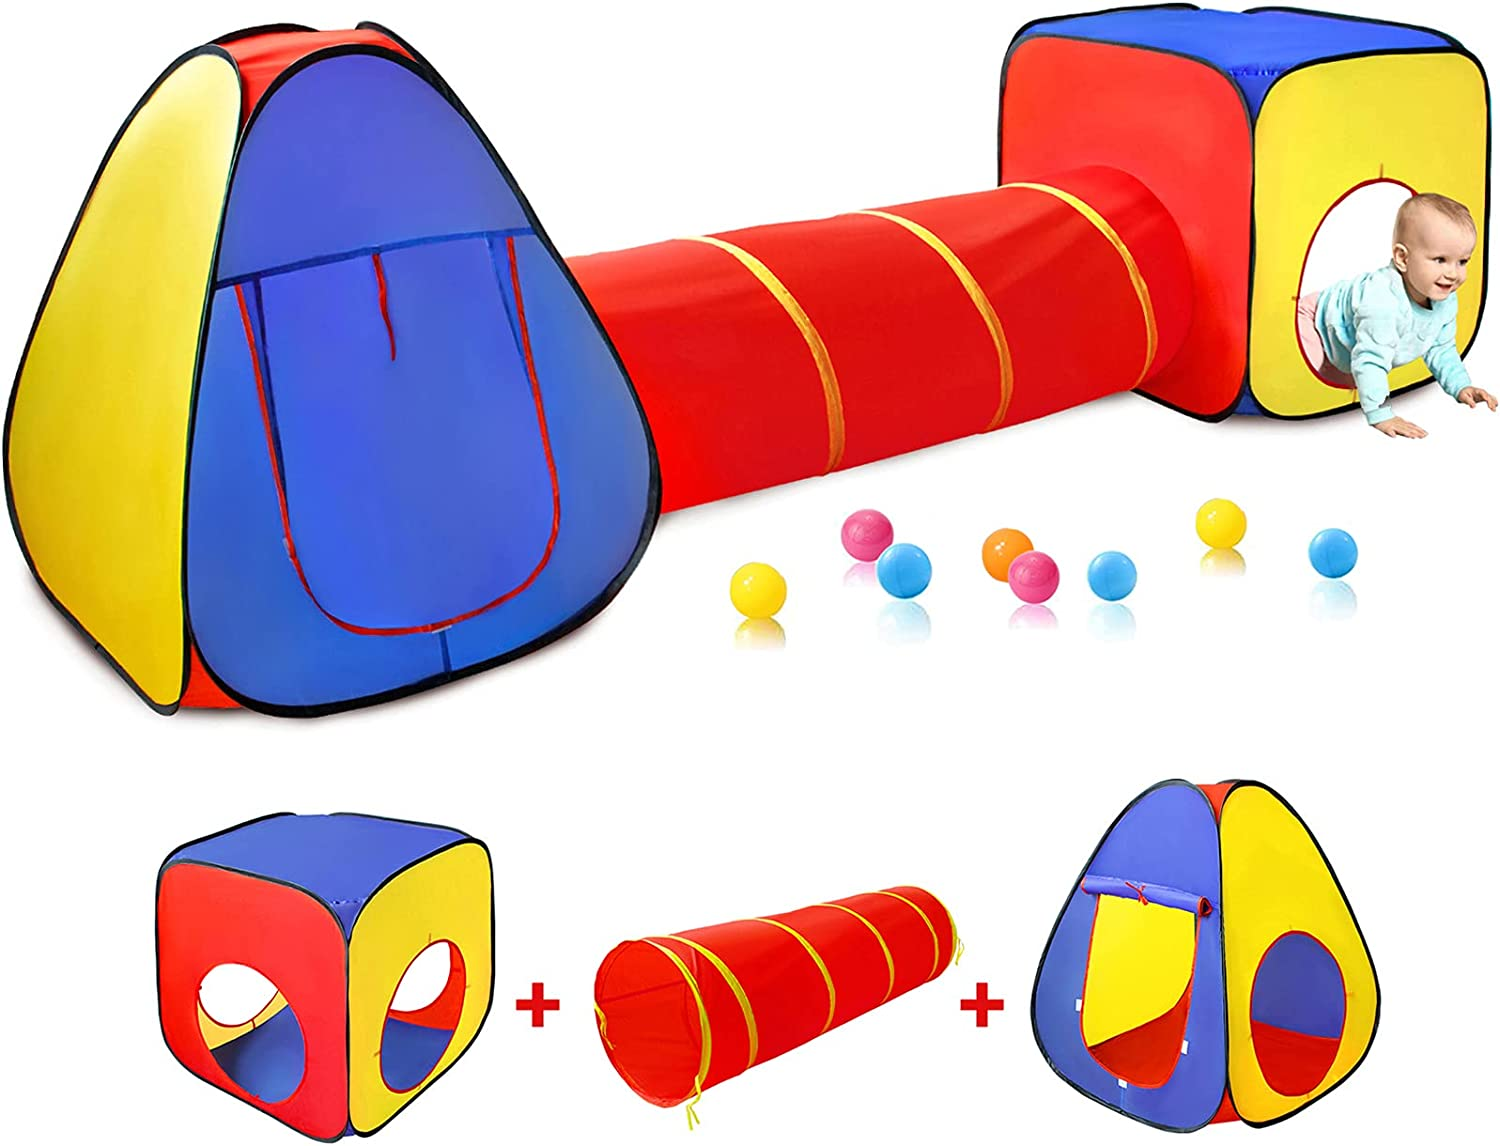 Kids Play Tent with Ball Up Pit+Crawl Industry No. 1 Tunnel+Castle Arlington Mall Pop To